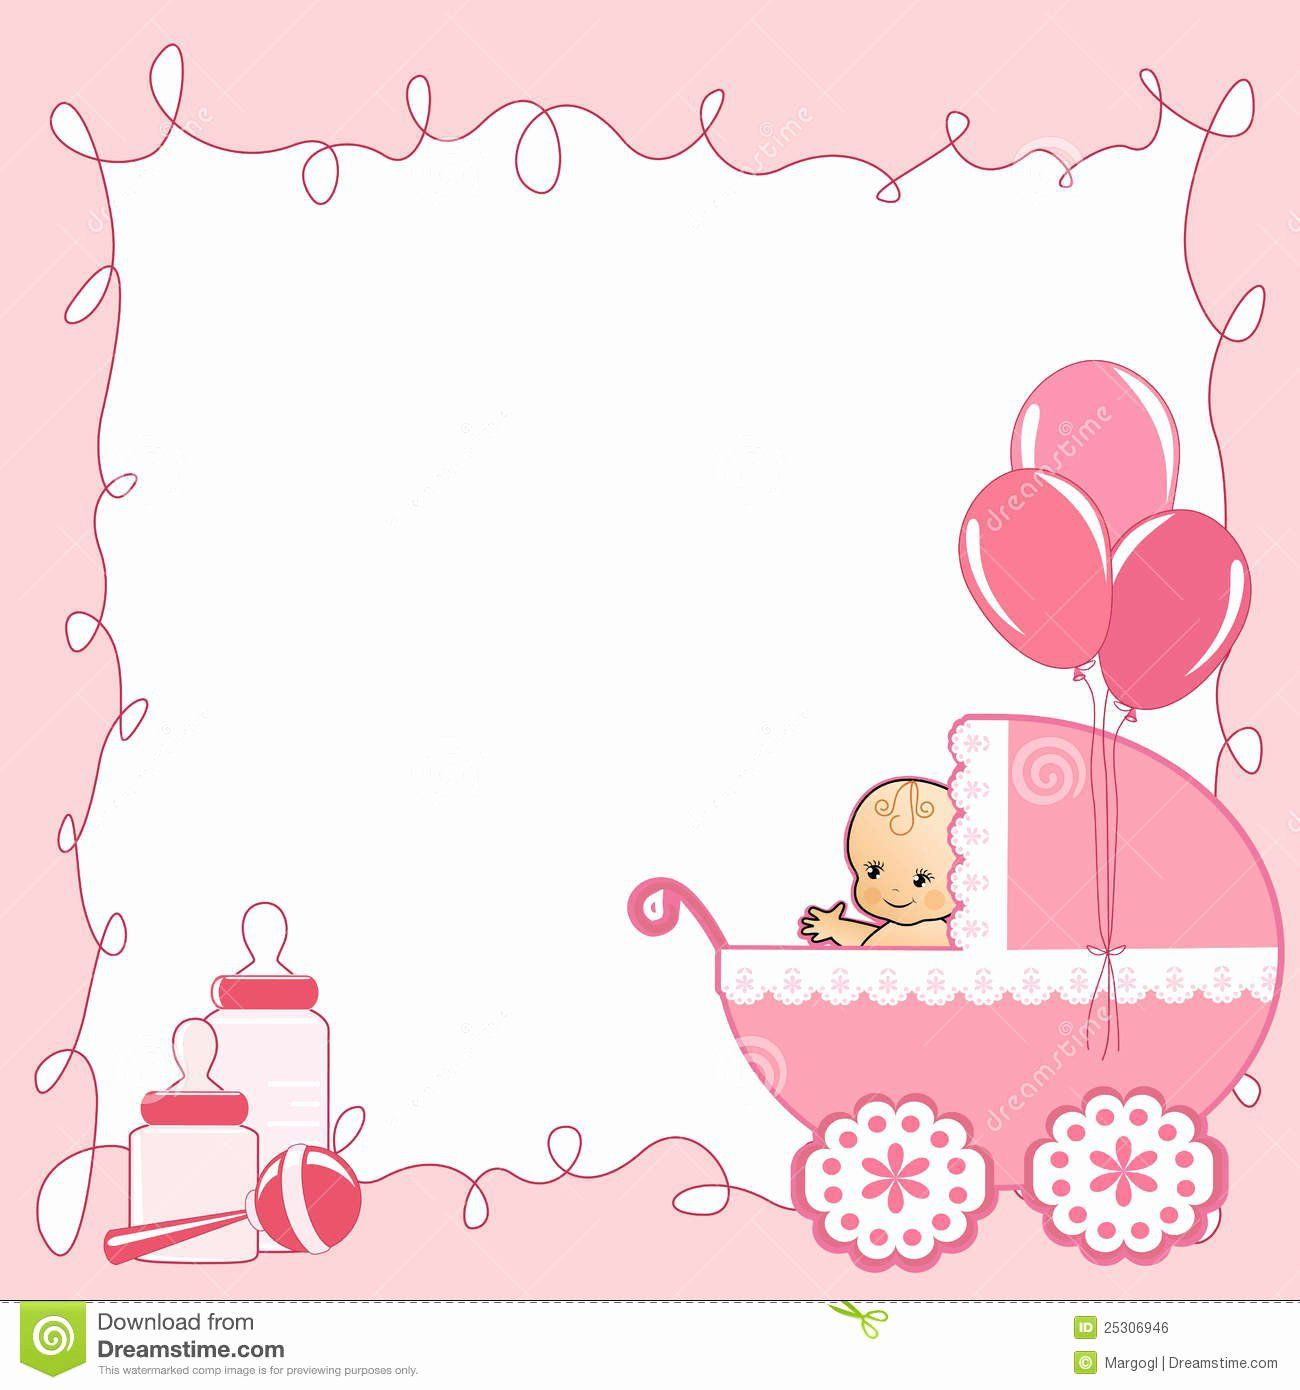 000 Top Baby Shower Card Template Inspiration  Microsoft Word Invitation Design Online Printable FreeFull